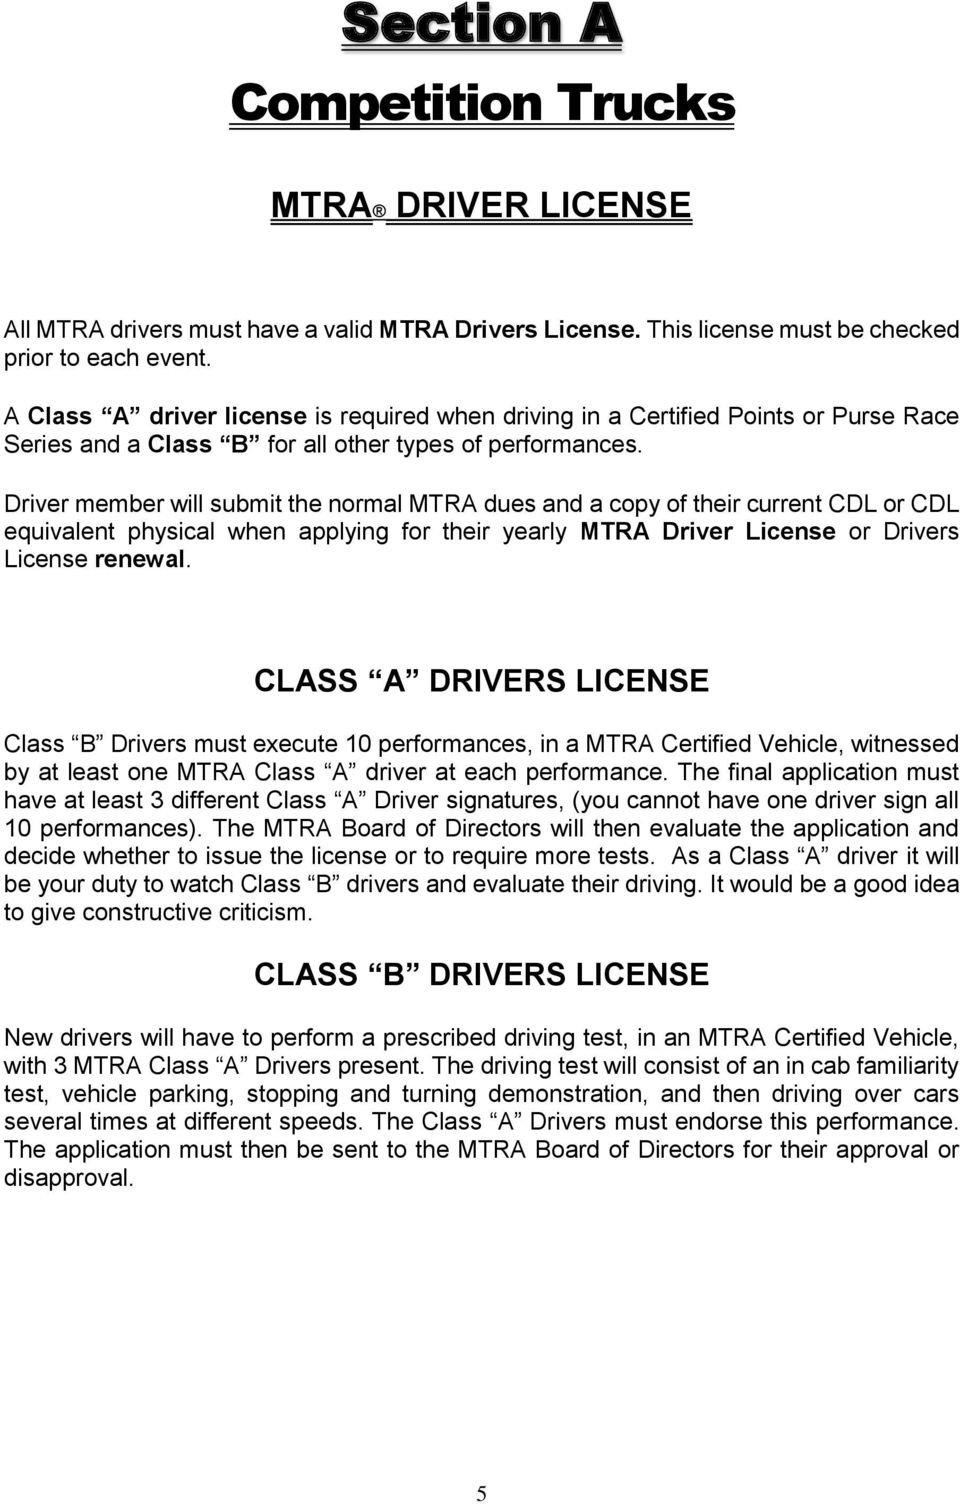 Driver member will submit the normal MTRA dues and a copy of their current CDL or CDL equivalent physical when applying for their yearly MTRA Driver License or Drivers License renewal.